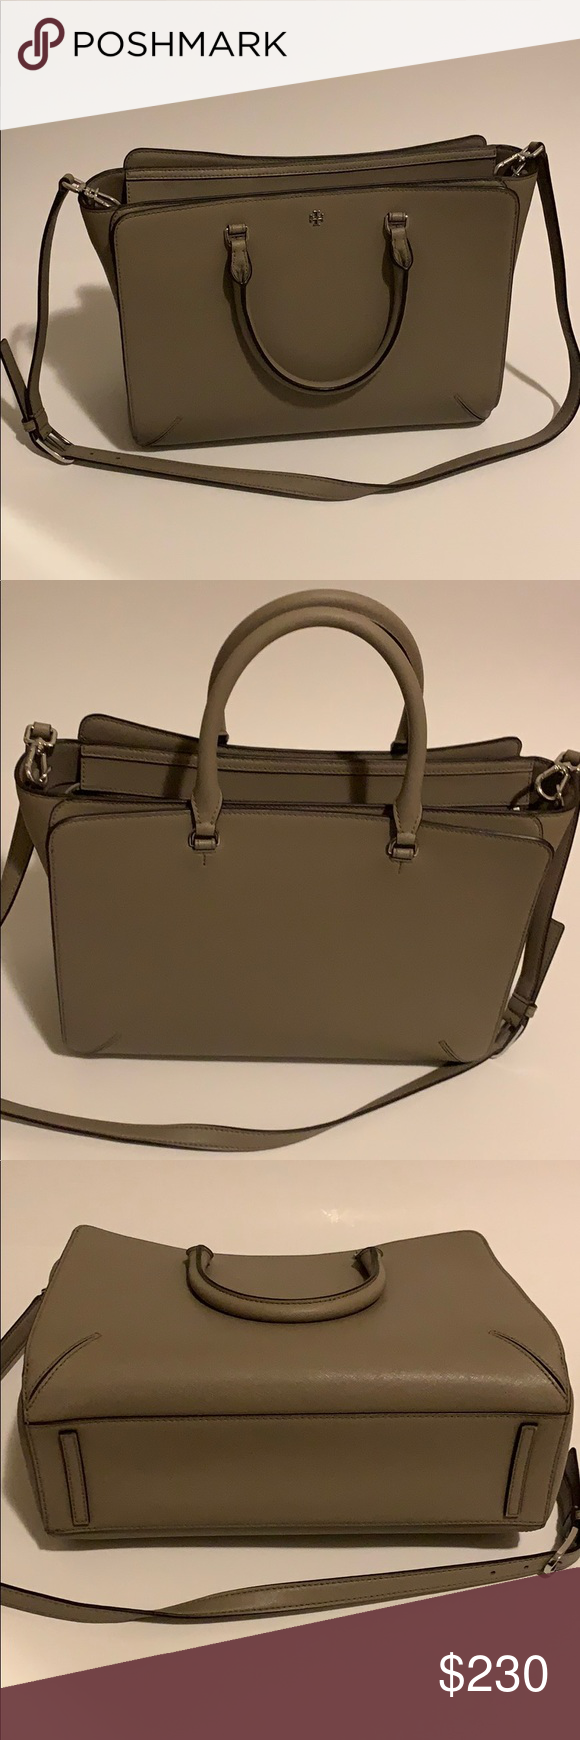 Tory Burch - Large structure tote! Like new! Tory Burch - I used it as a laptop bag and got so many compliments! It's a nice neutral taupe color. See first pic up to light to show true color! Has multiple small pockets inside. Main compartment zips & side two pockets bottom. Can carry or wear long strap on shoulder. I moved to a backpack for work so I could carry my lunch too. This is great for a large tote, traveling, work etc. This material is perfect bcuz it shows no wear and tear, stains etc. Just wipe clean! Love this bag!!! Tory Burch Bags Totes